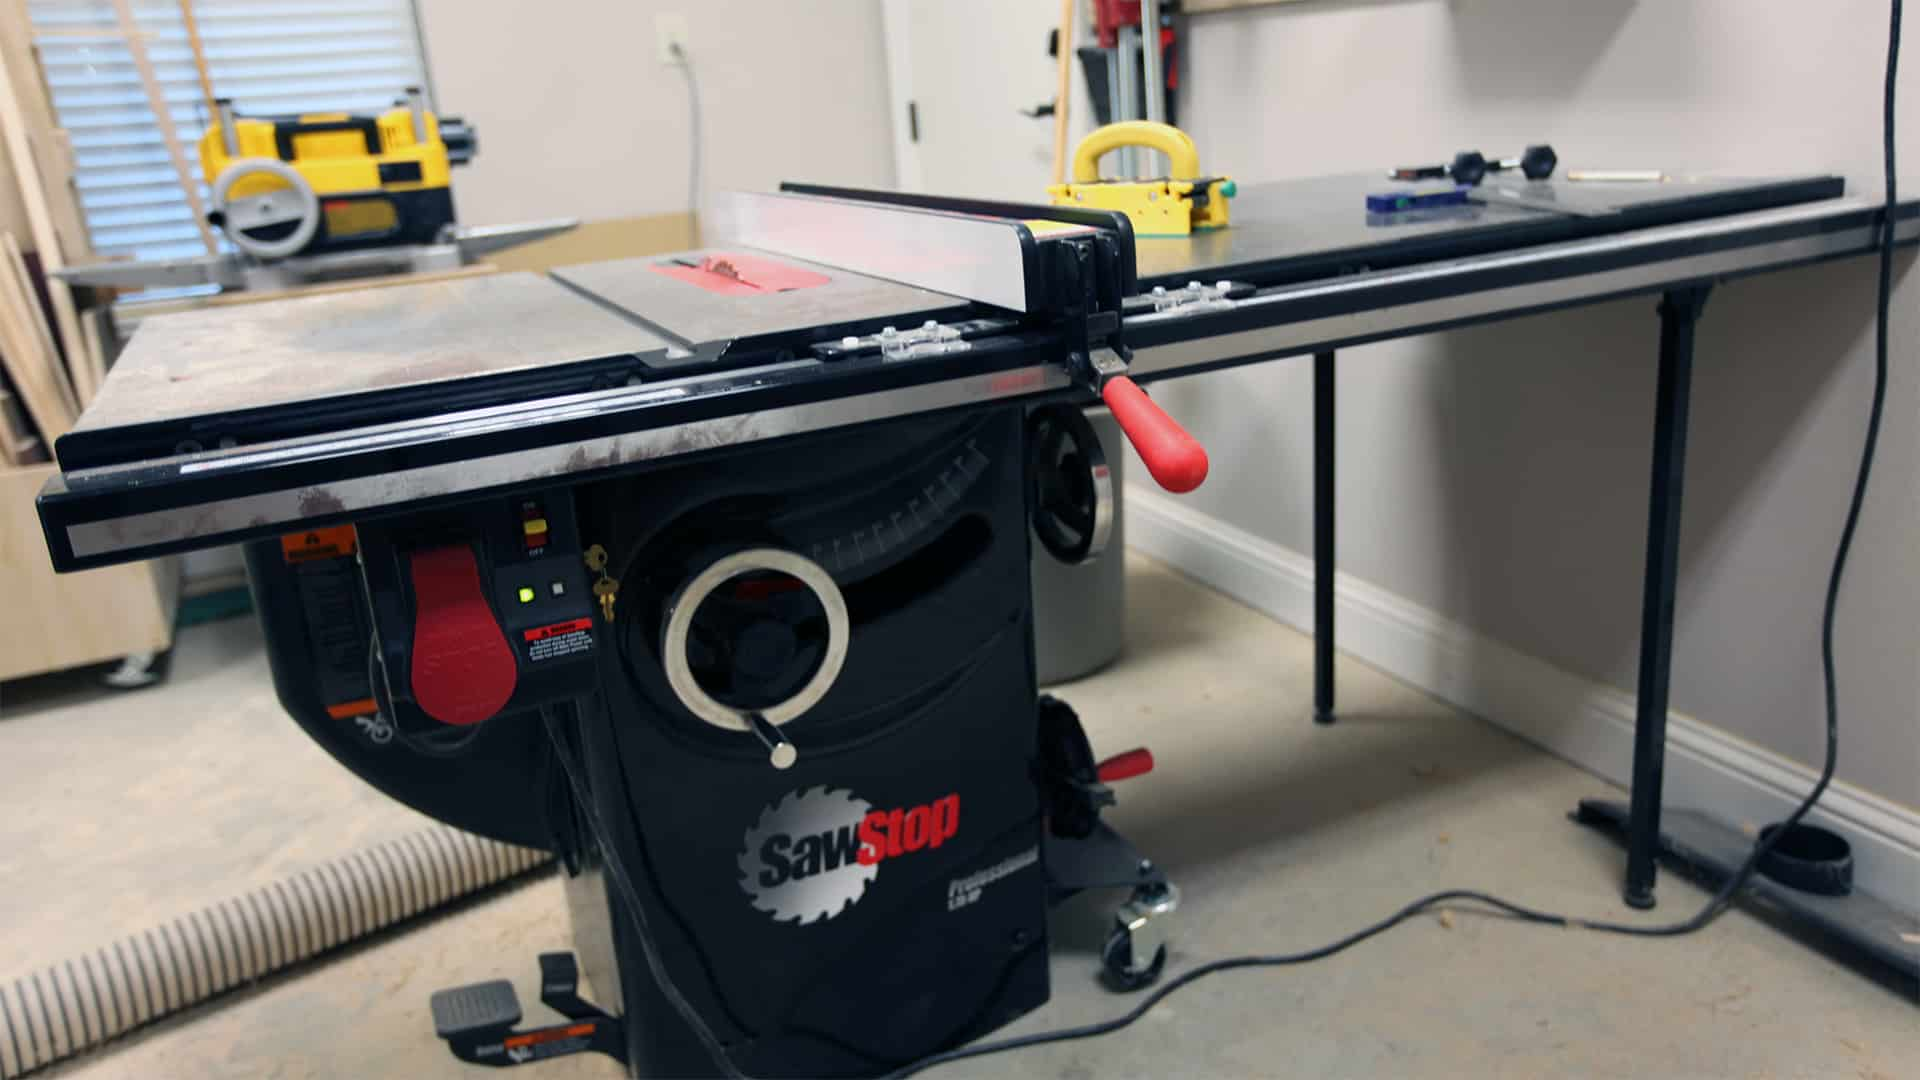 Shop Tour Sawstop Professional Cabinet Saw The Geek Pub